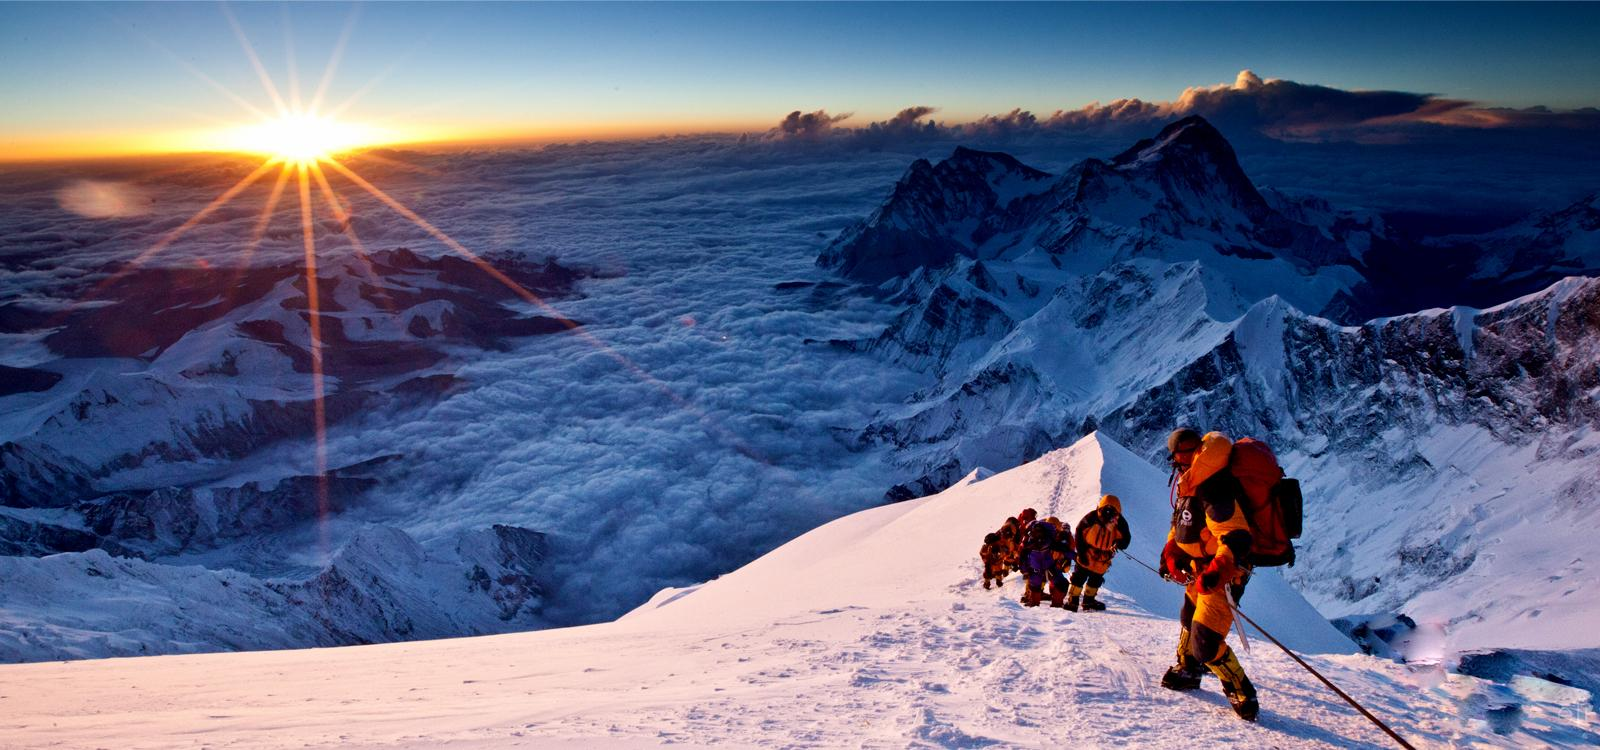 Climbing and Expedition